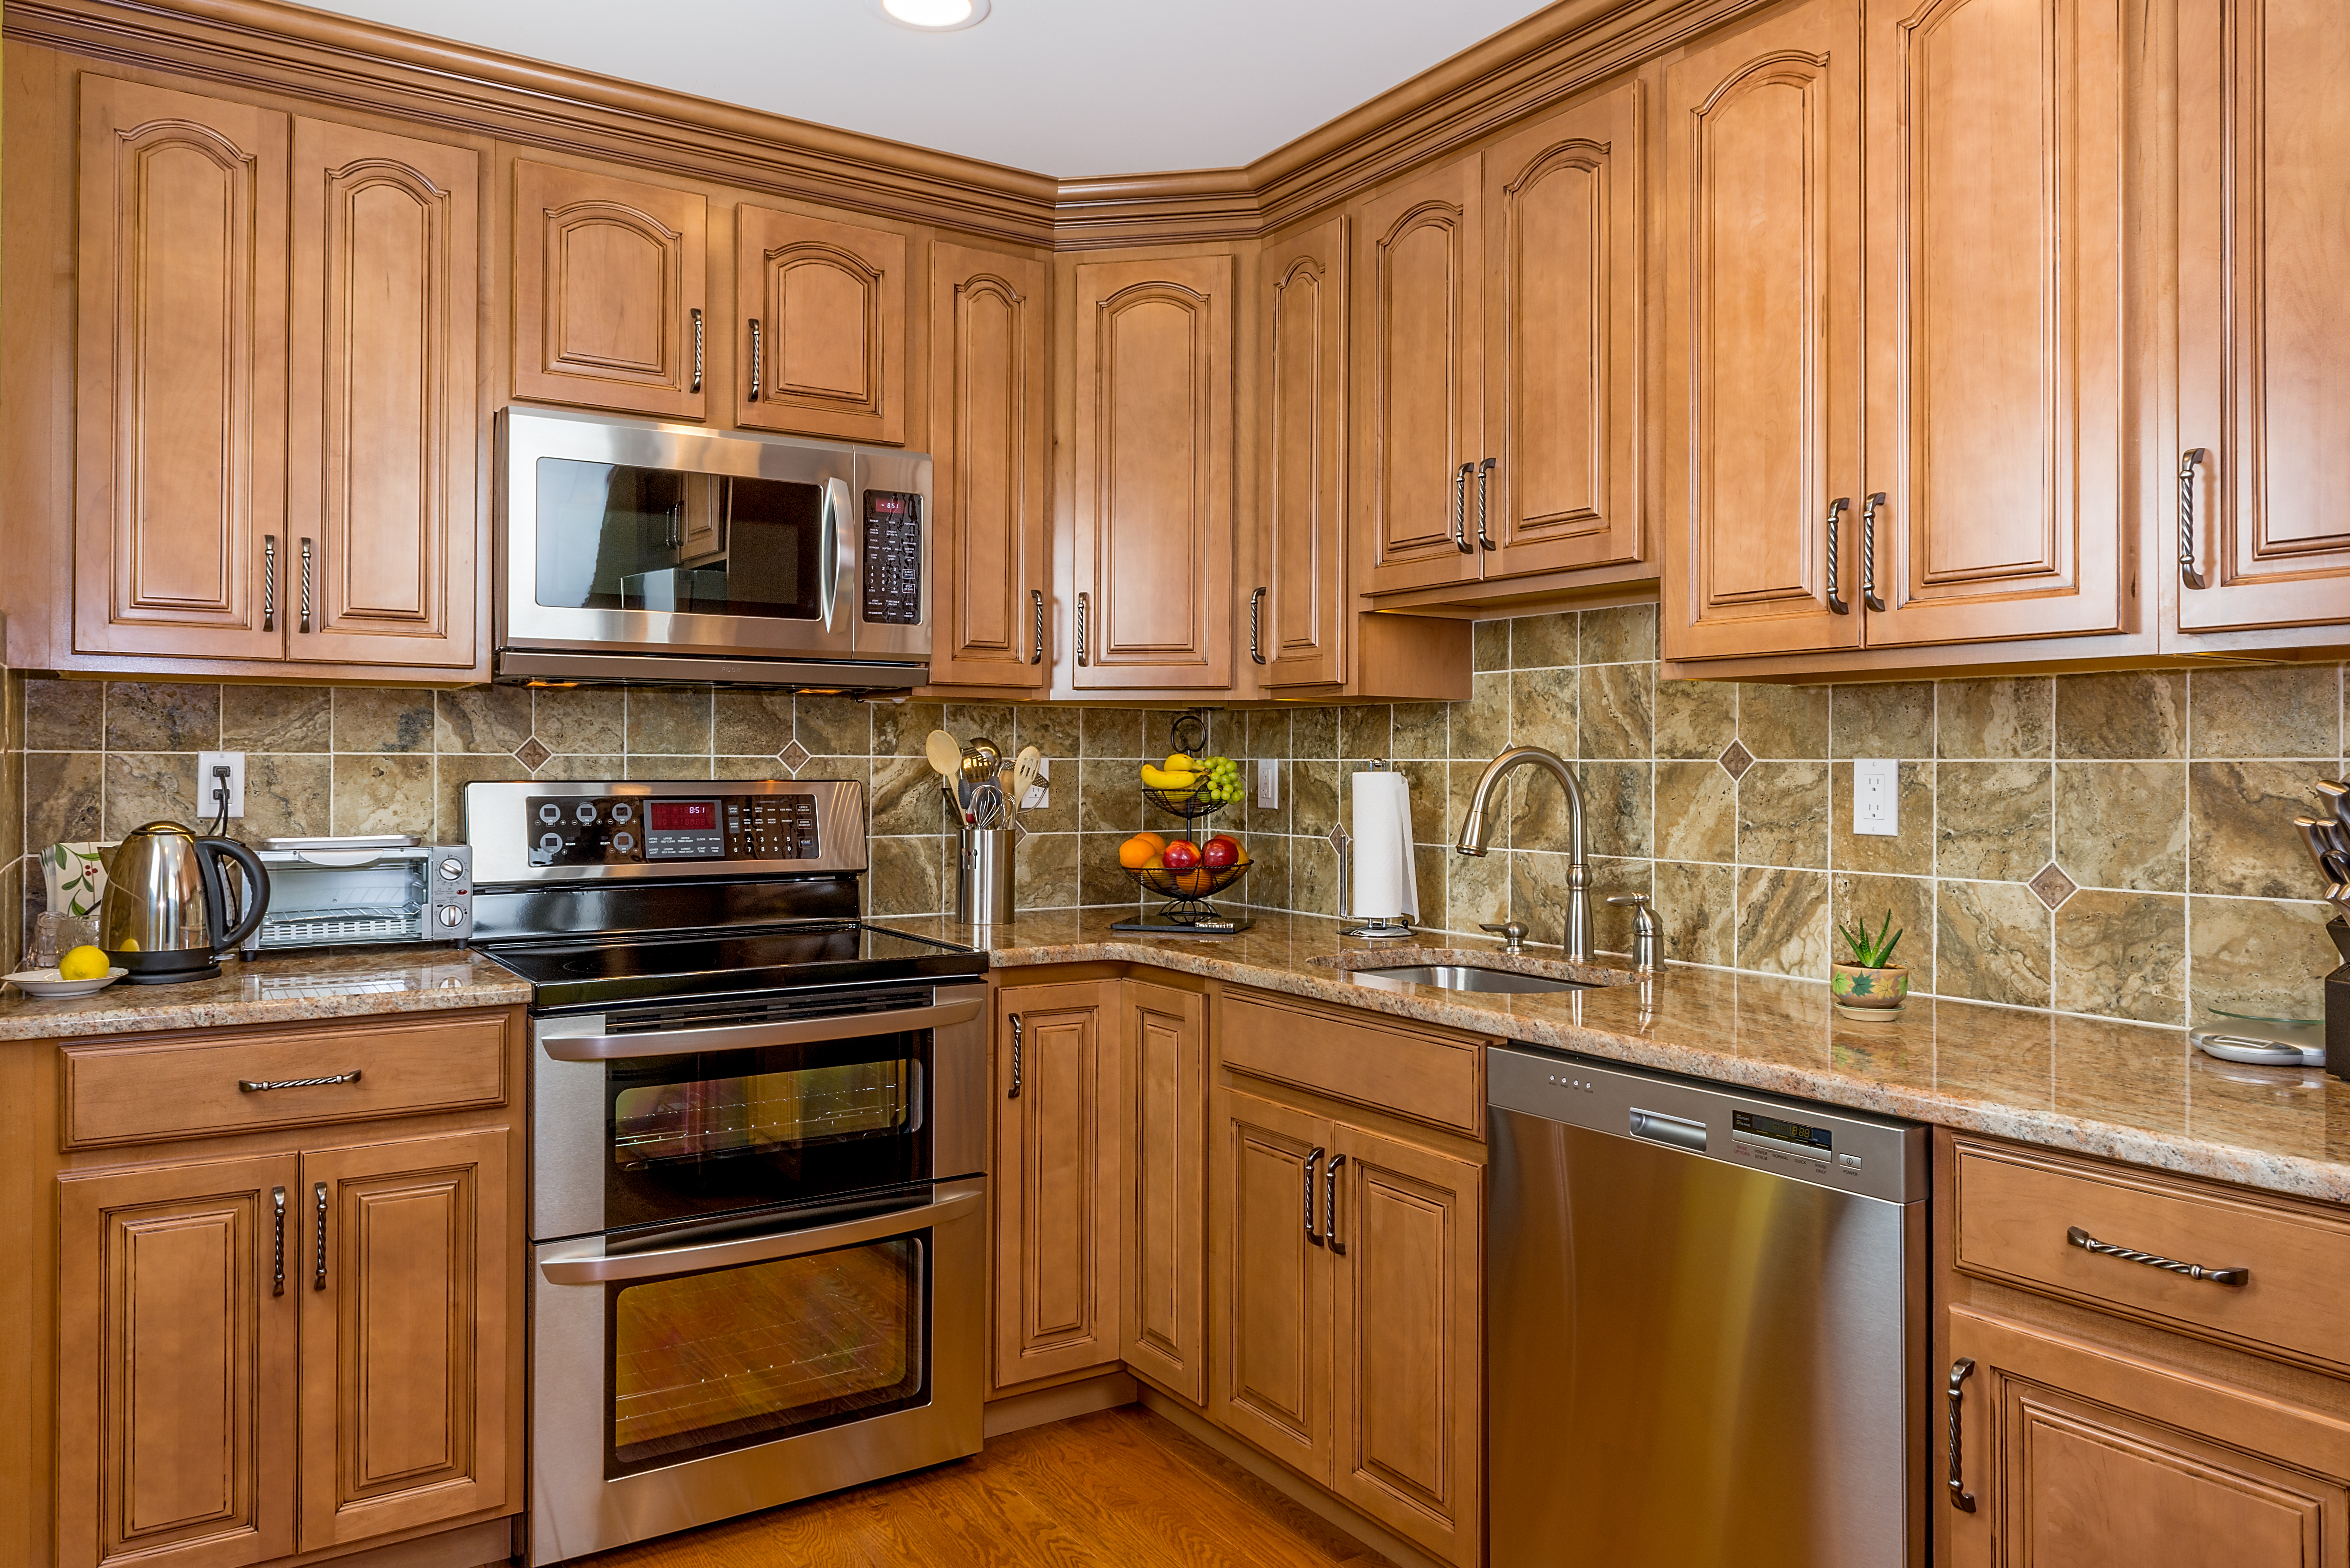 What To Use To Clean A Polyurethane Finish On Cabinets Hunker